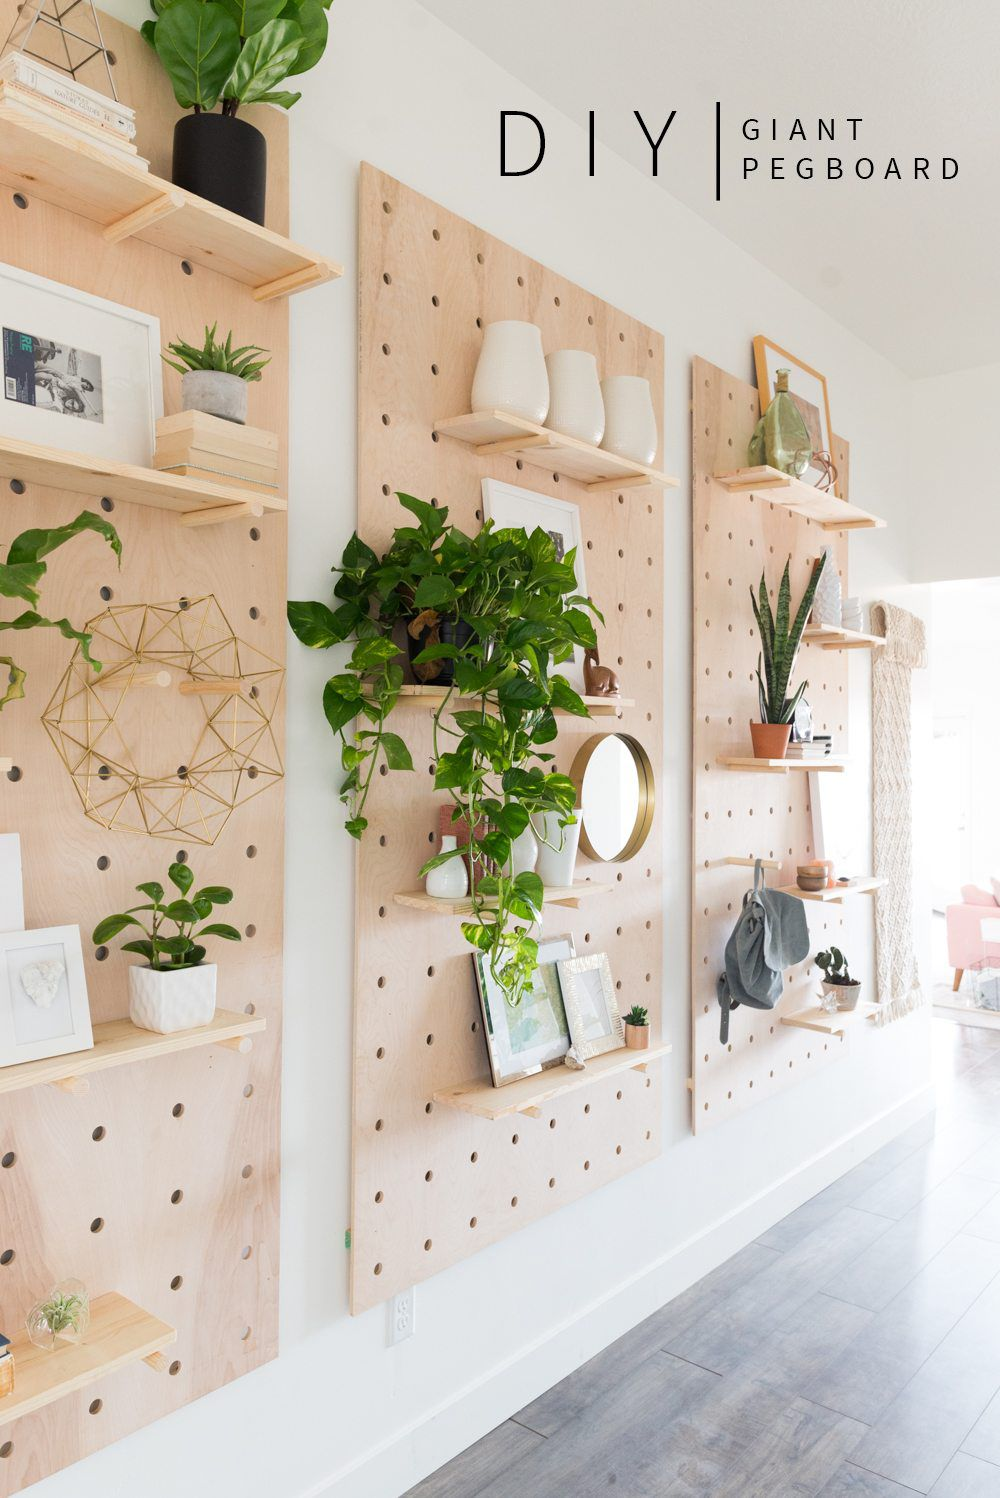 14 Unique DIY Shelving Ideas - How to Make and Build Shelves